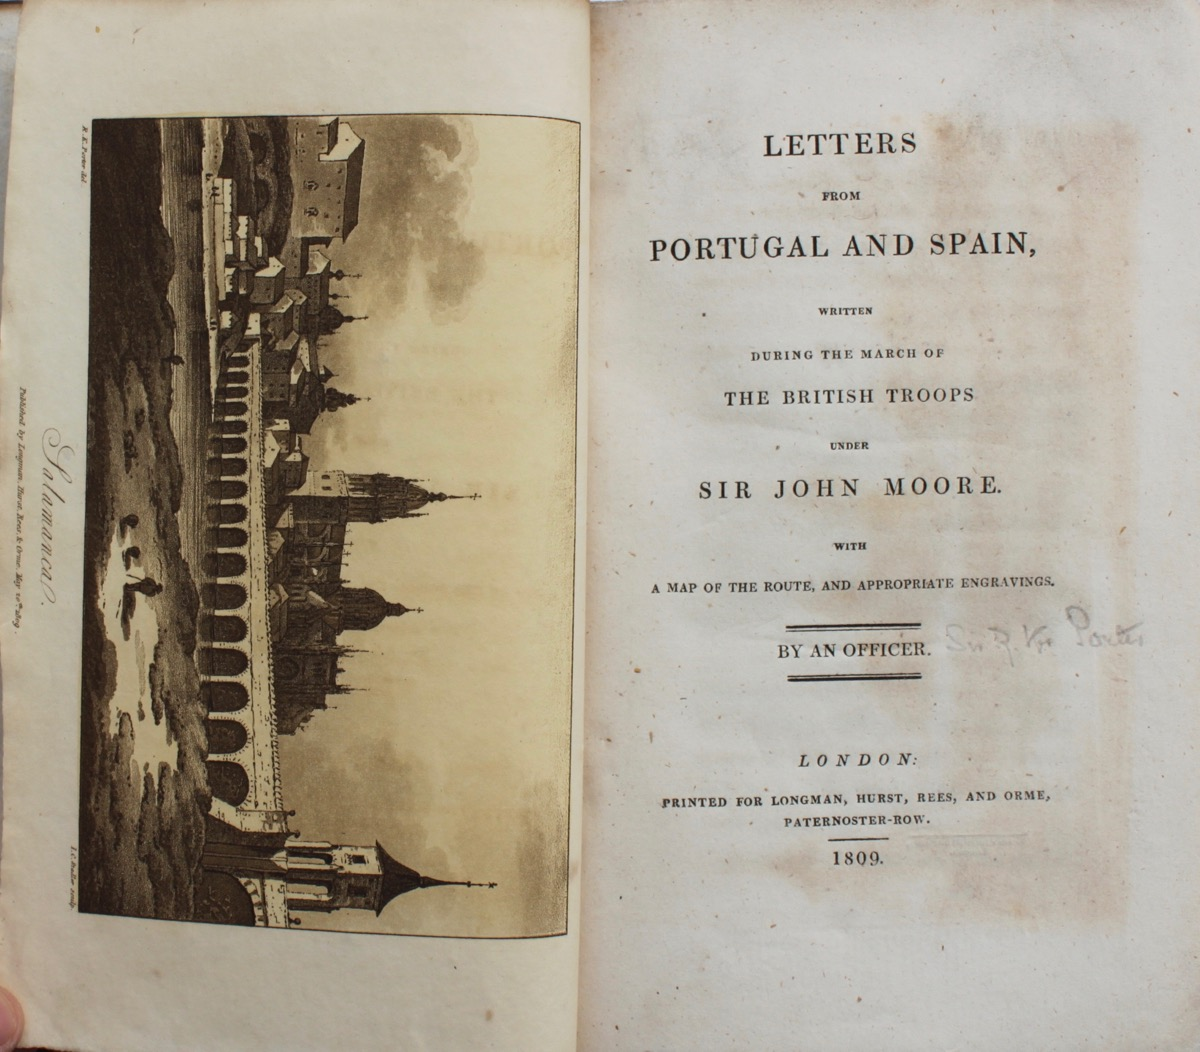 Image for Letters from Portugal and Spain, written during the march of British Troops under Sir John Moore with a map of the route and appropriate engravings.